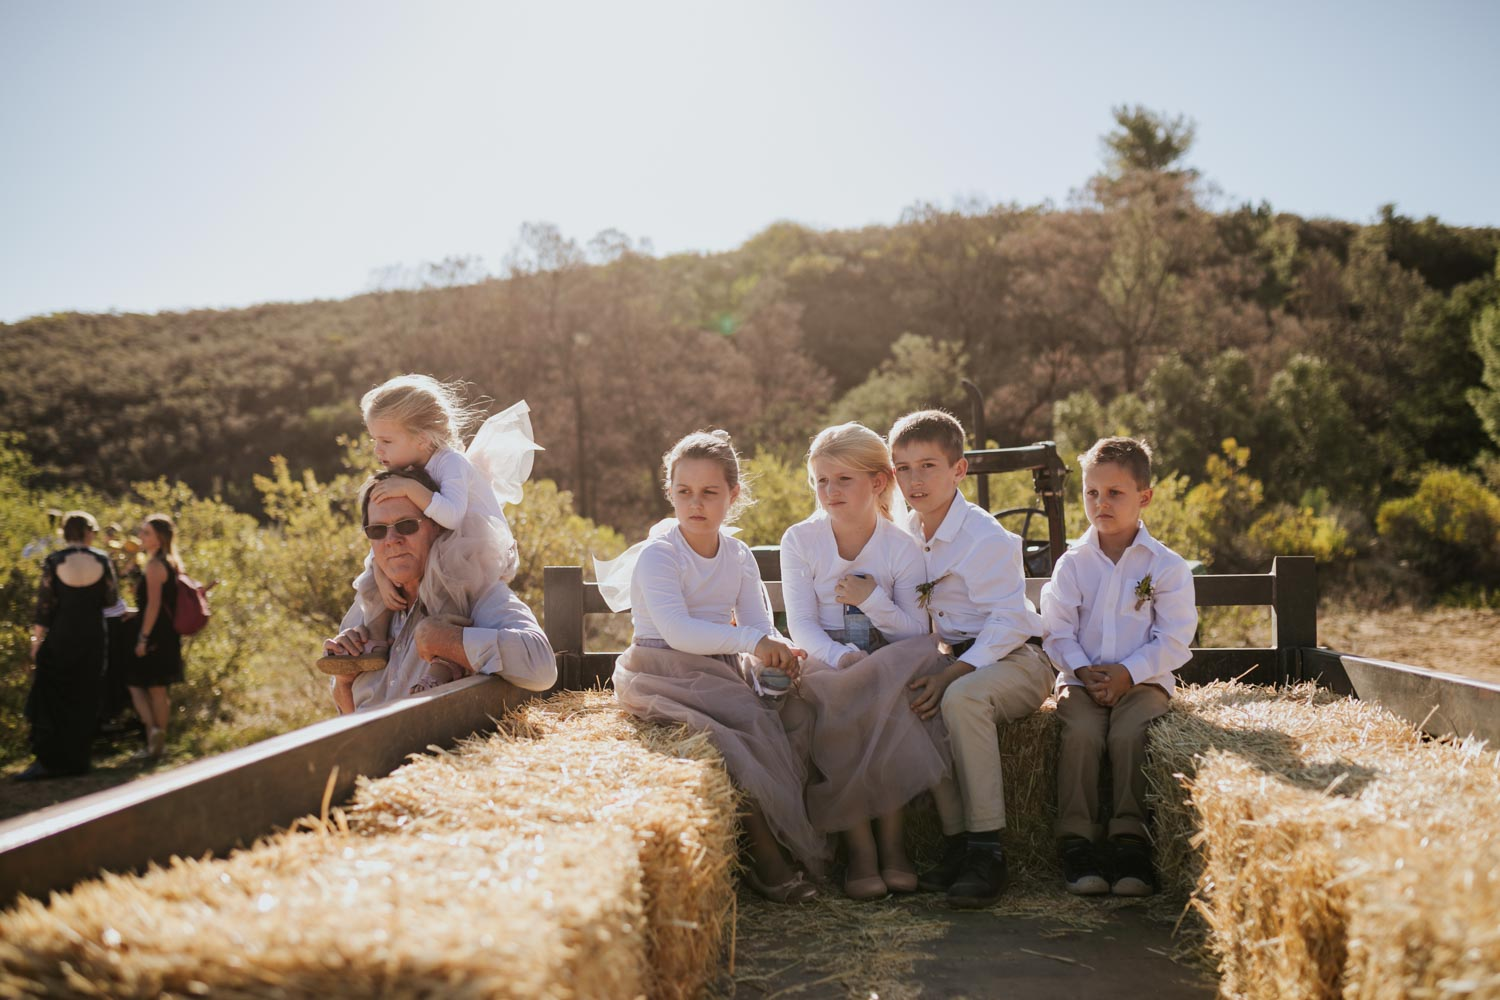 Cute and candid moment of flower girls and page boys sitting in hay bails in the back of an old farm tractor